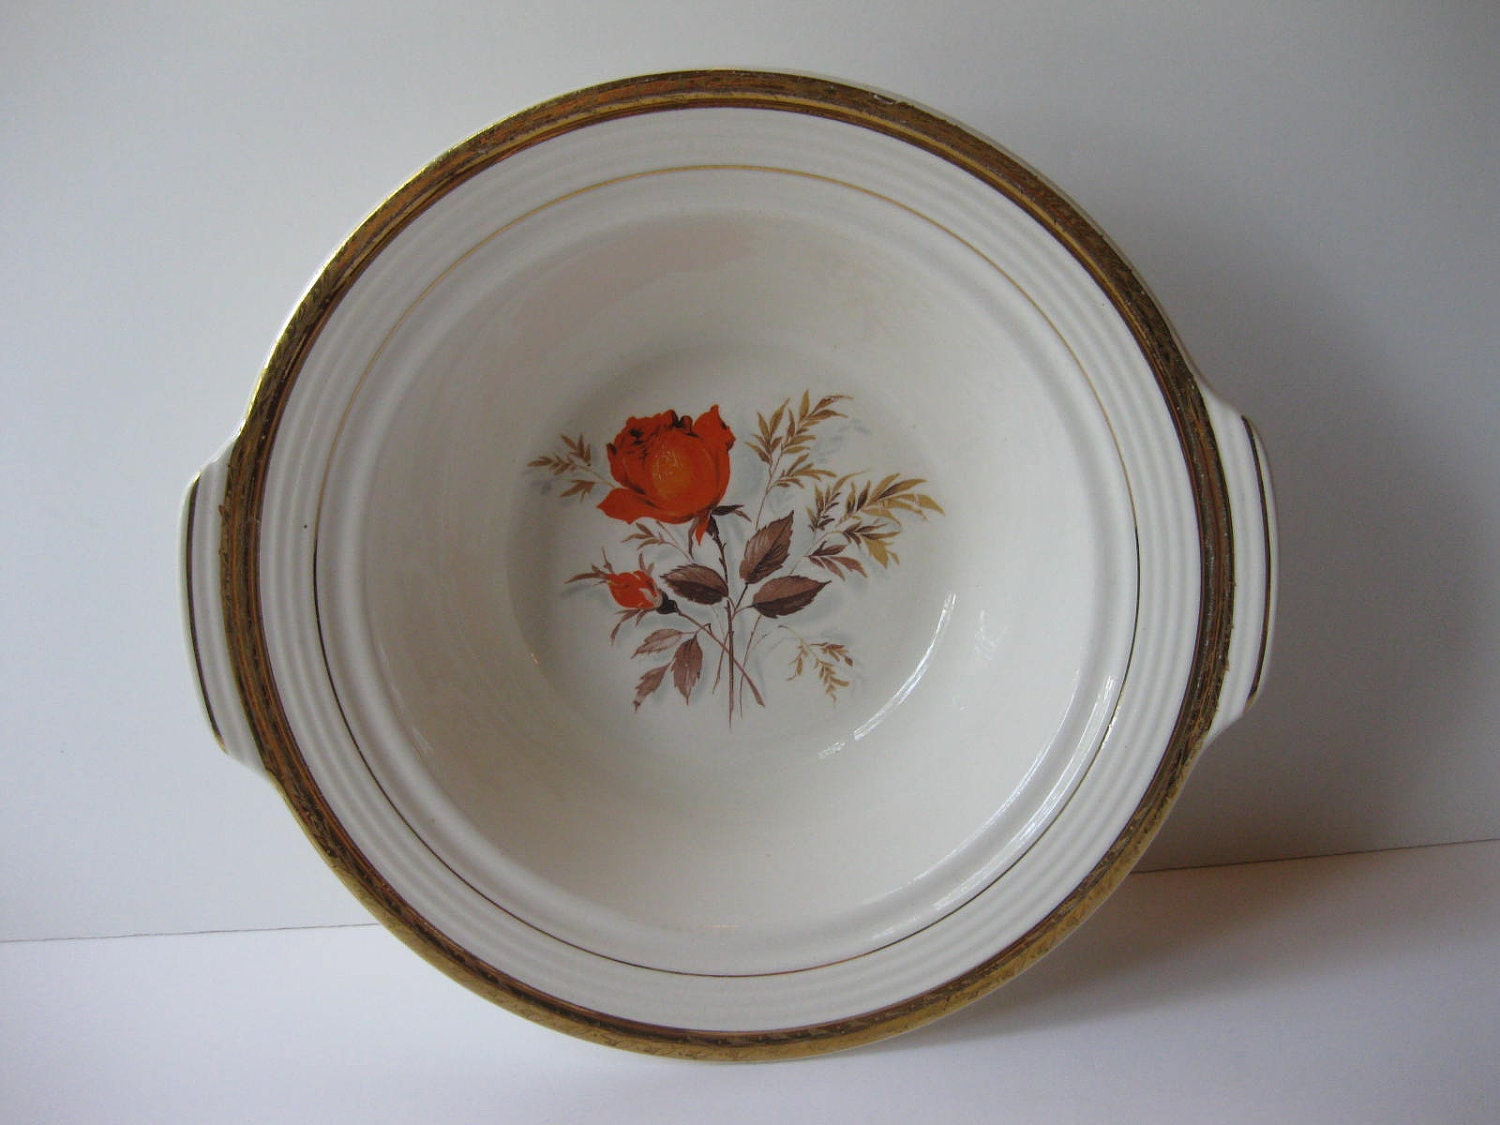 Vintage American Limoges Vermillion Rose 22 K Gold Trimmed Round Vegetable Bowl - thechinagirl